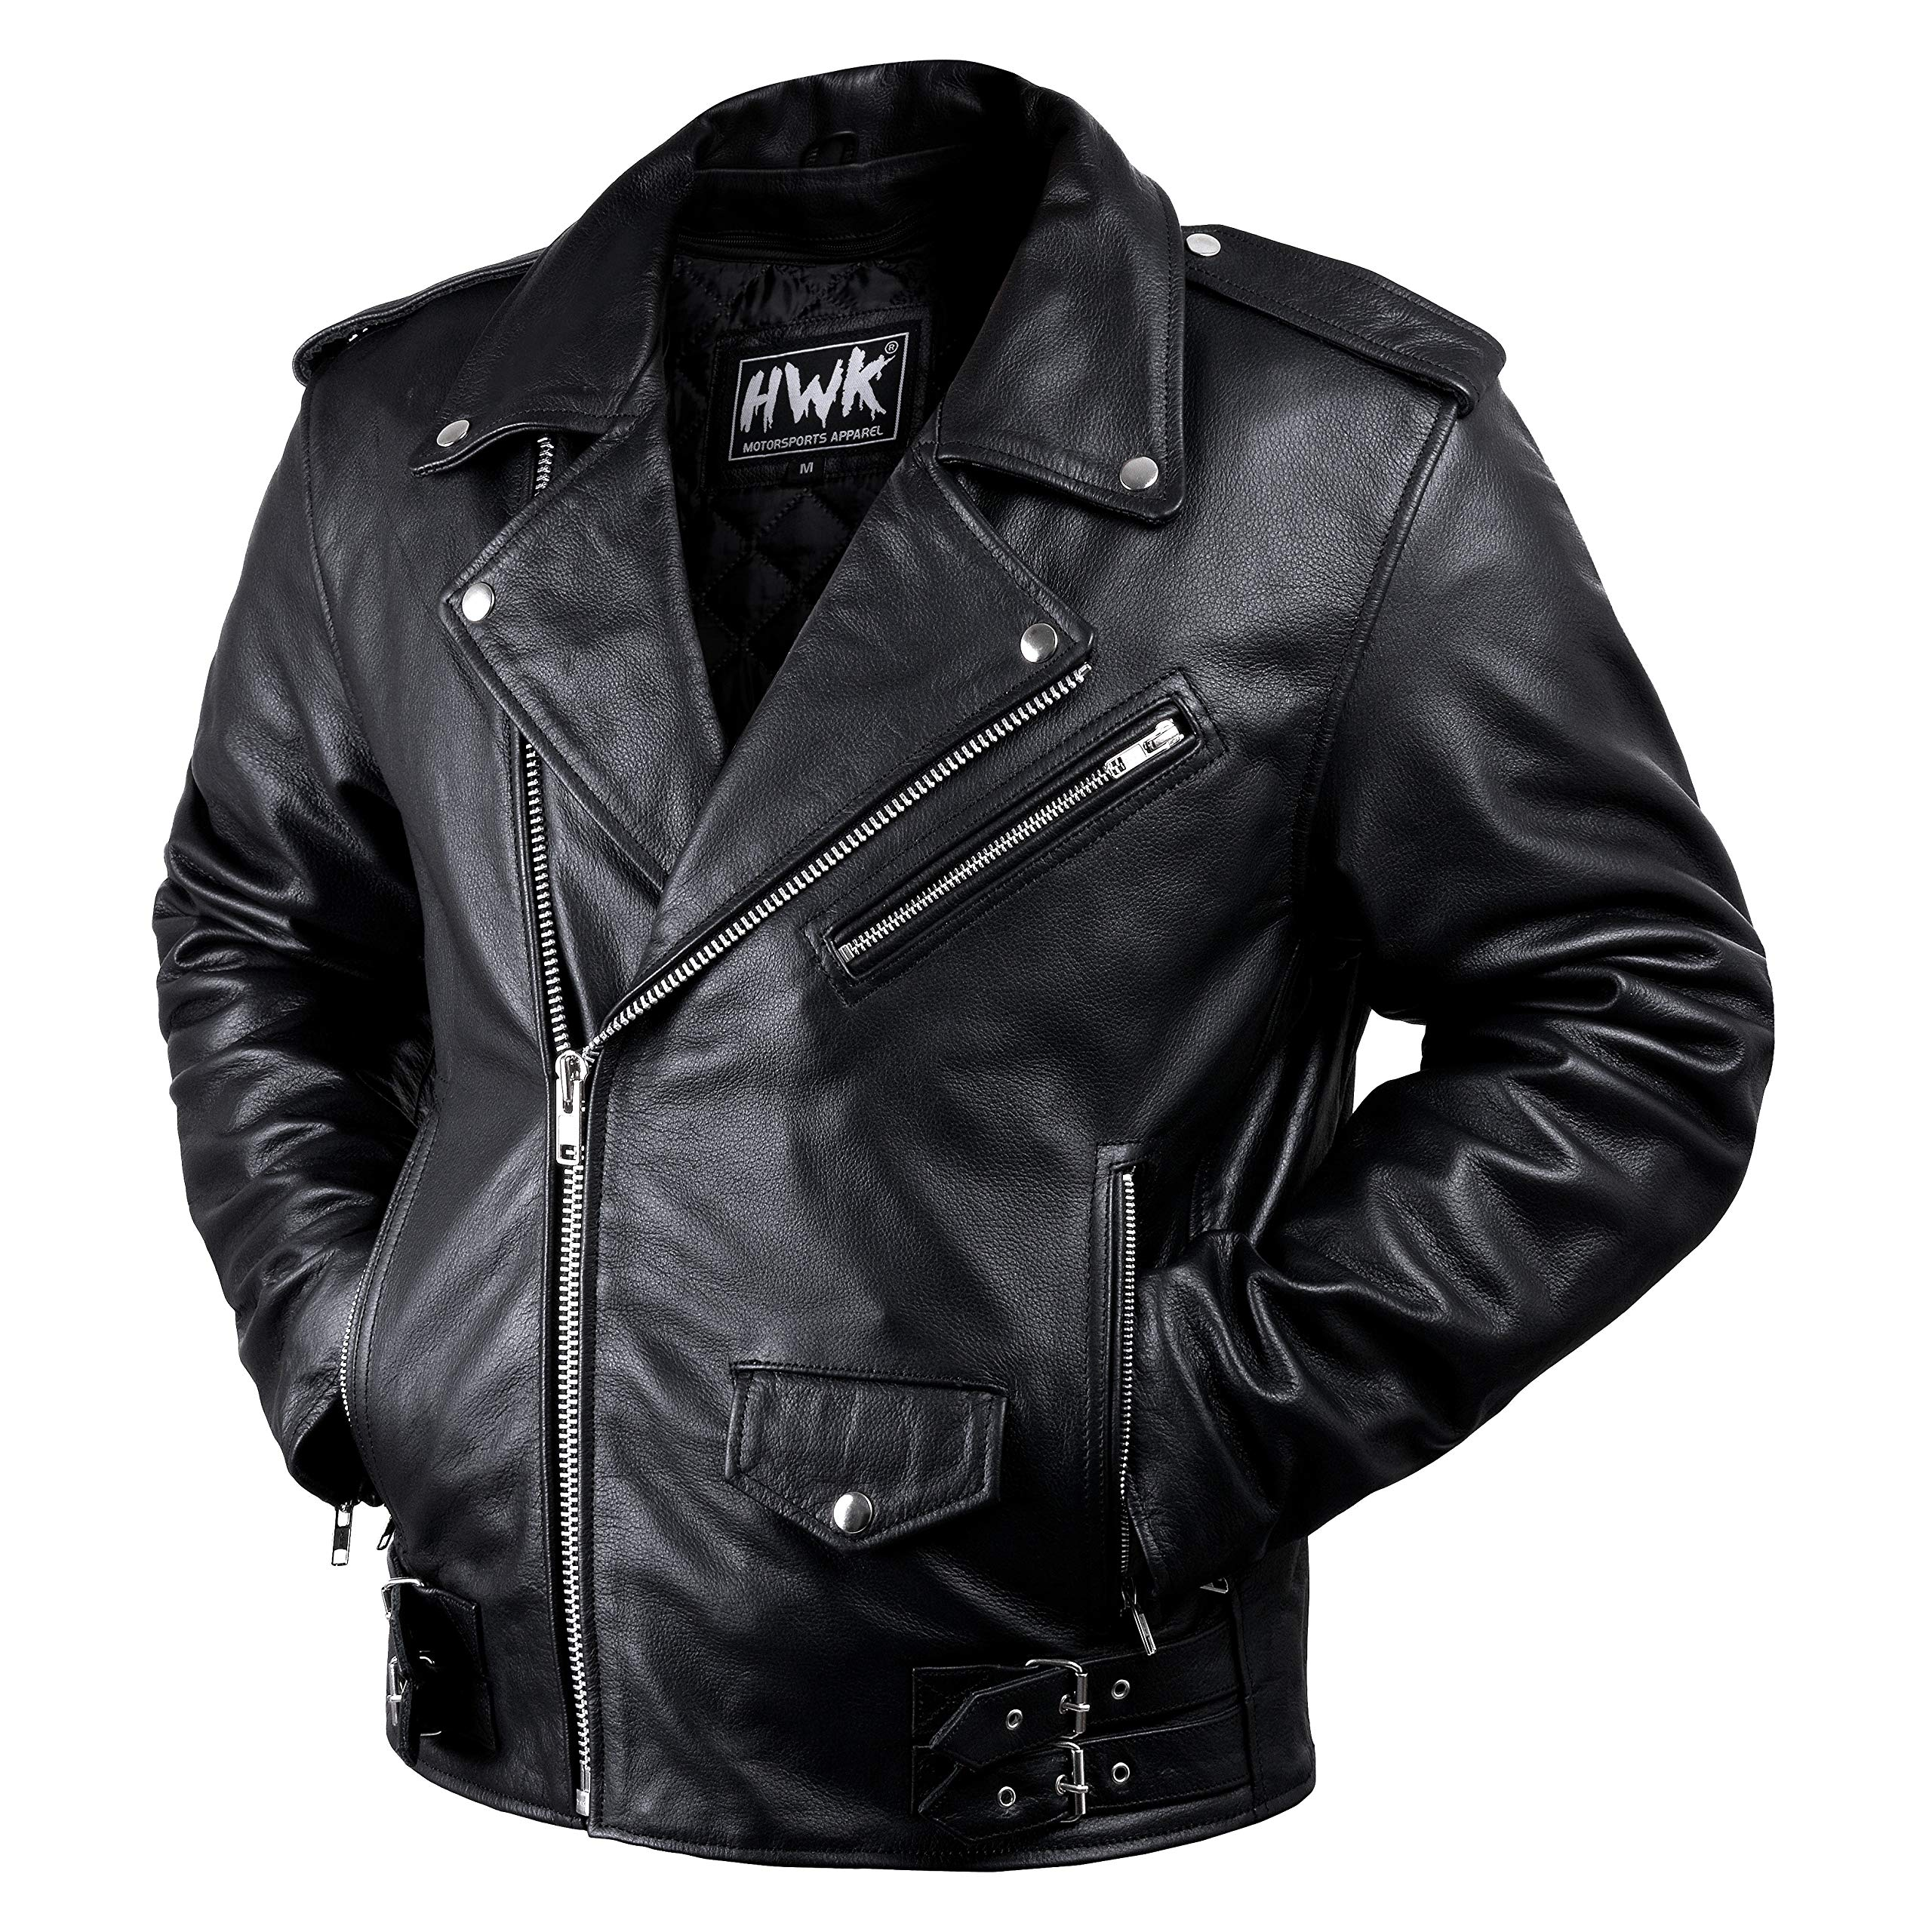 Leather Motorcycle Vintage Jackets Armored